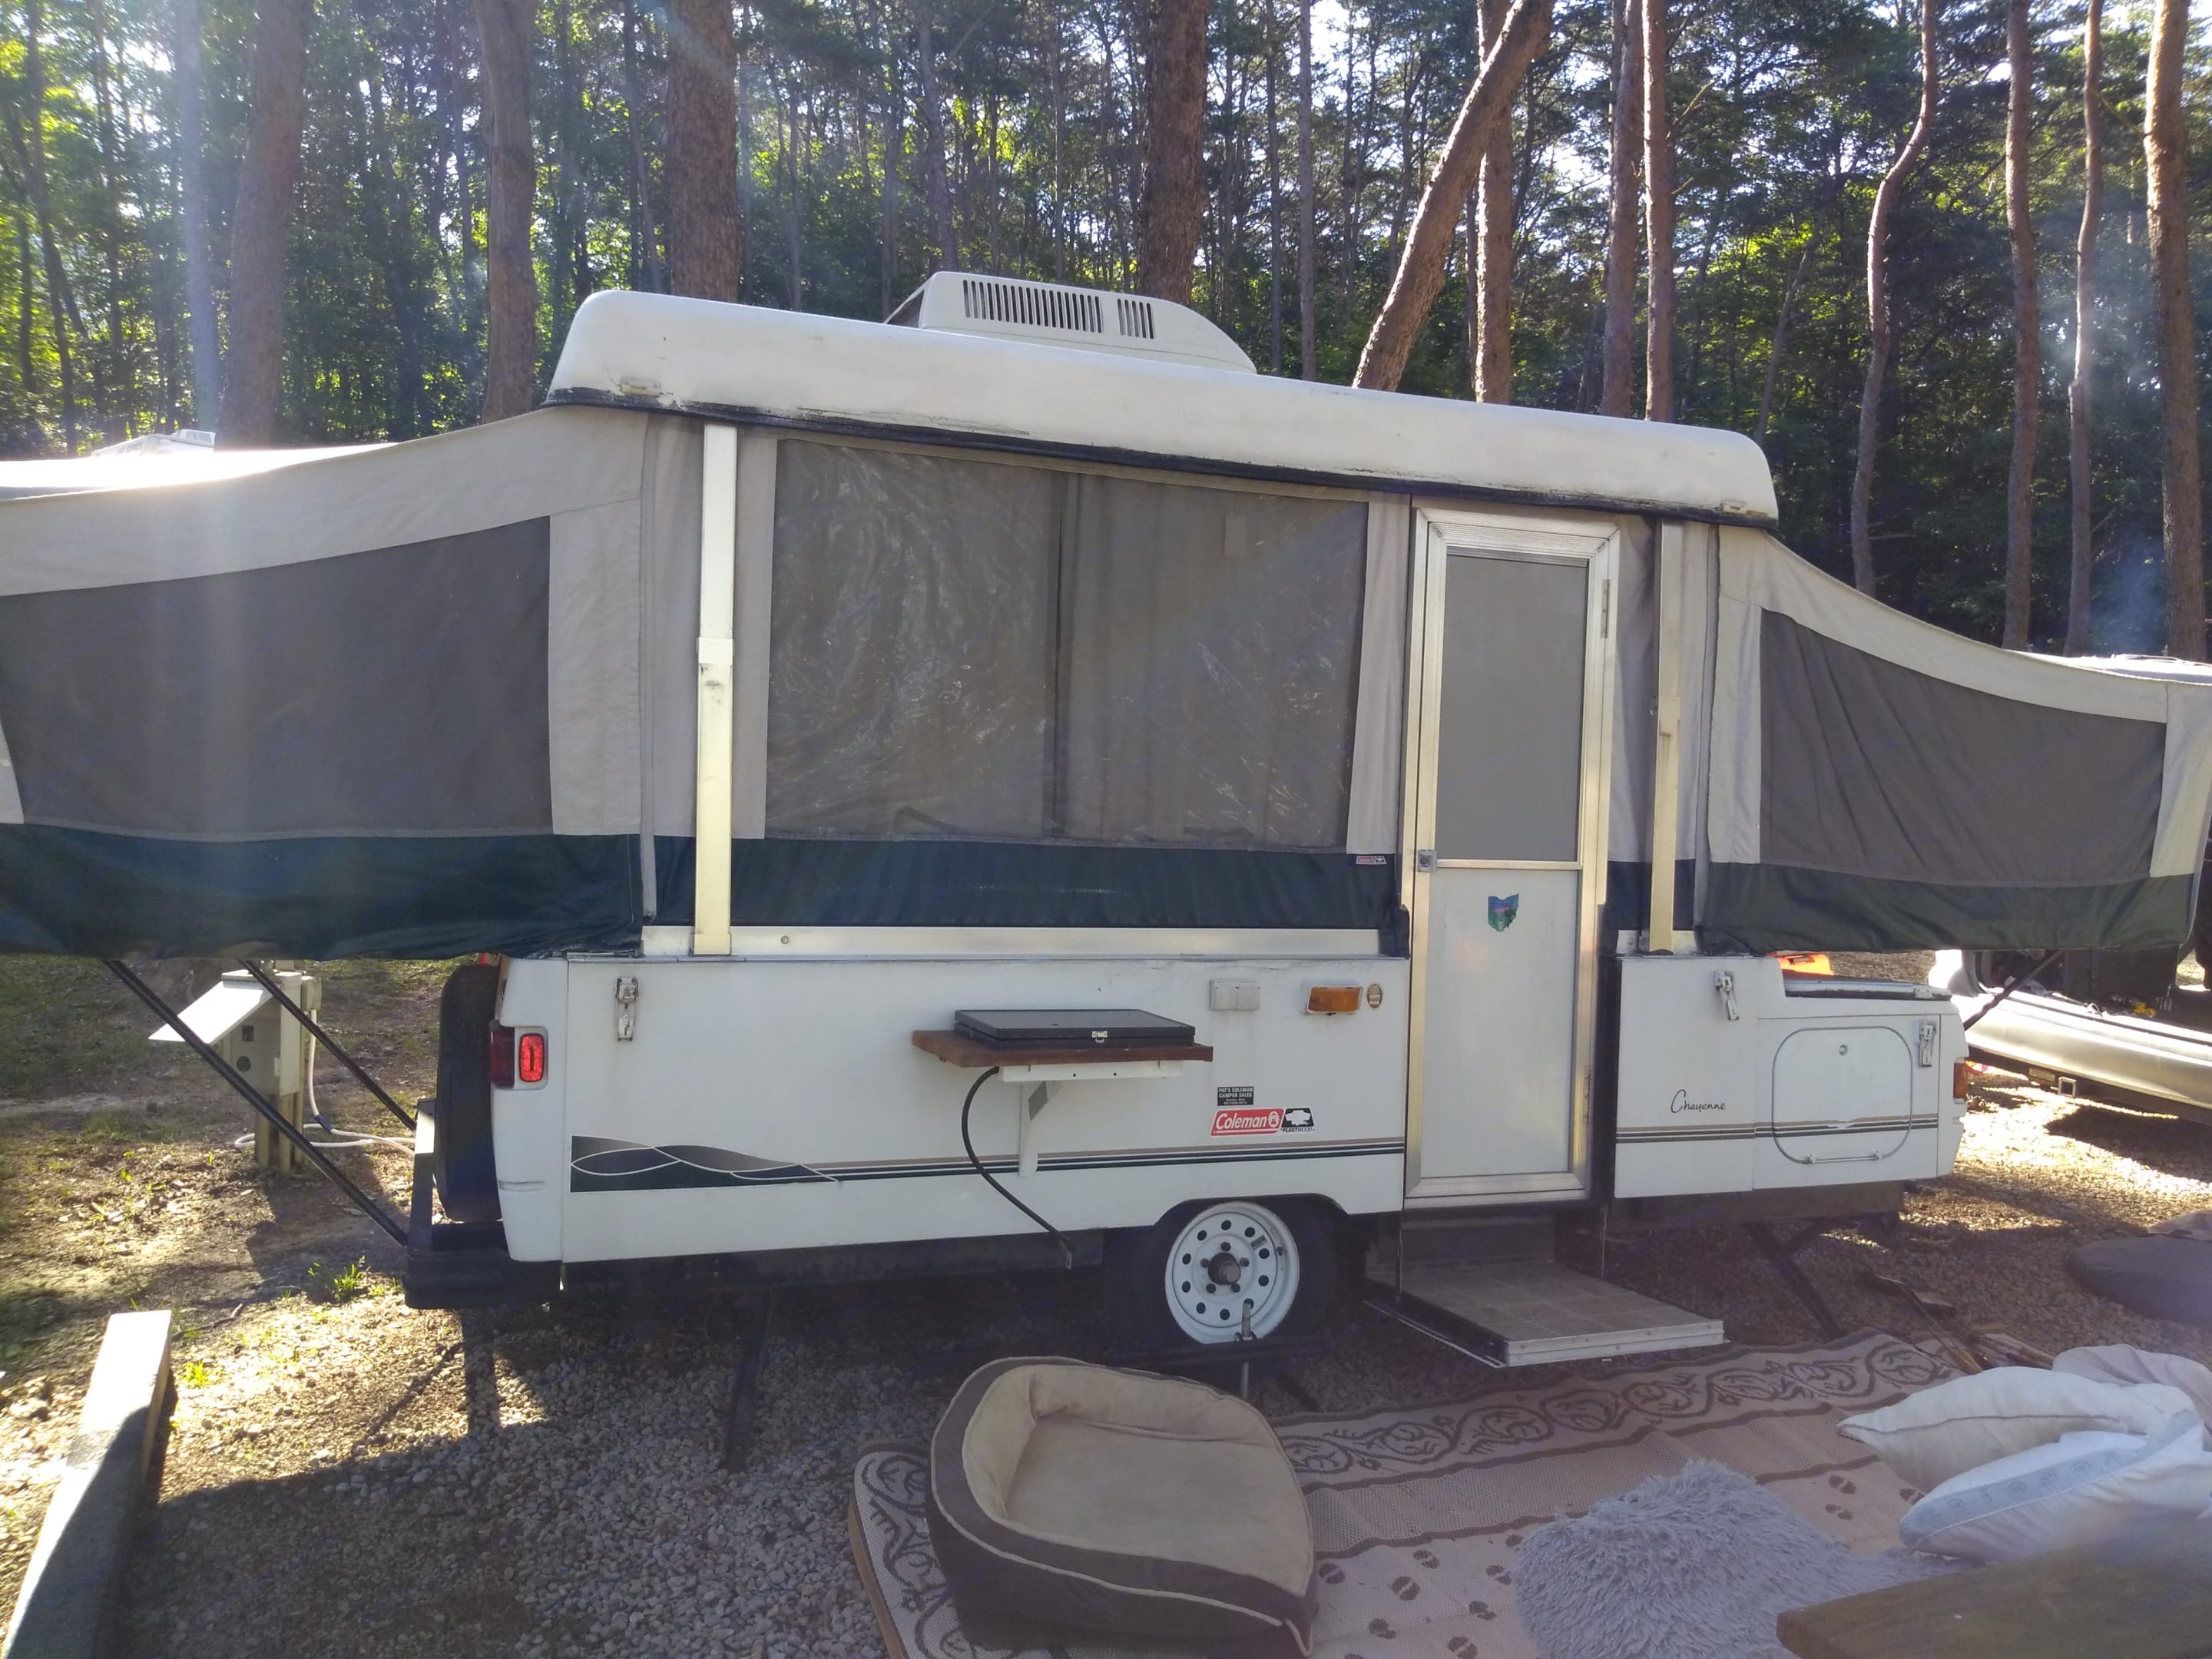 AC, Exterior Stove, King-Size Bed, Full-Size Bed. Coleman Grand Tour Cheyenne 2000